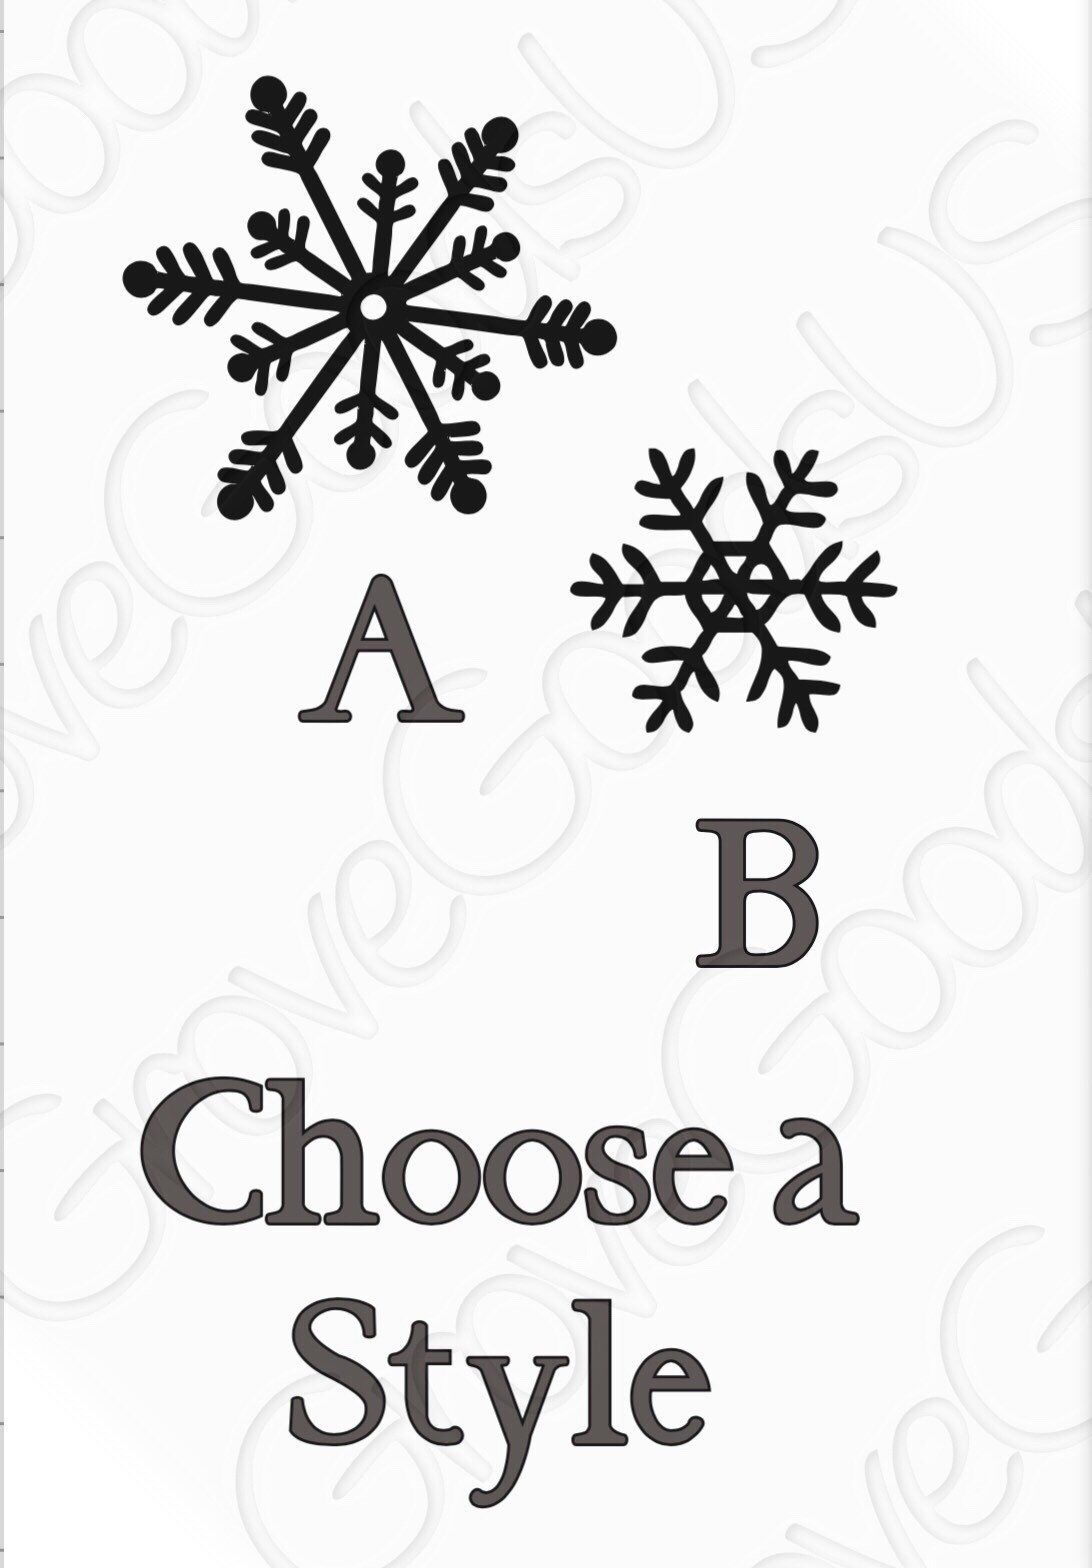 Excited To Share This Item From My Etsy Shop Snowflake Design Vinyl Decal Car Decal Window Yeti Tumb Custom Tumblers Snowflake Designs Car Decals Vinyl [ 1568 x 1092 Pixel ]